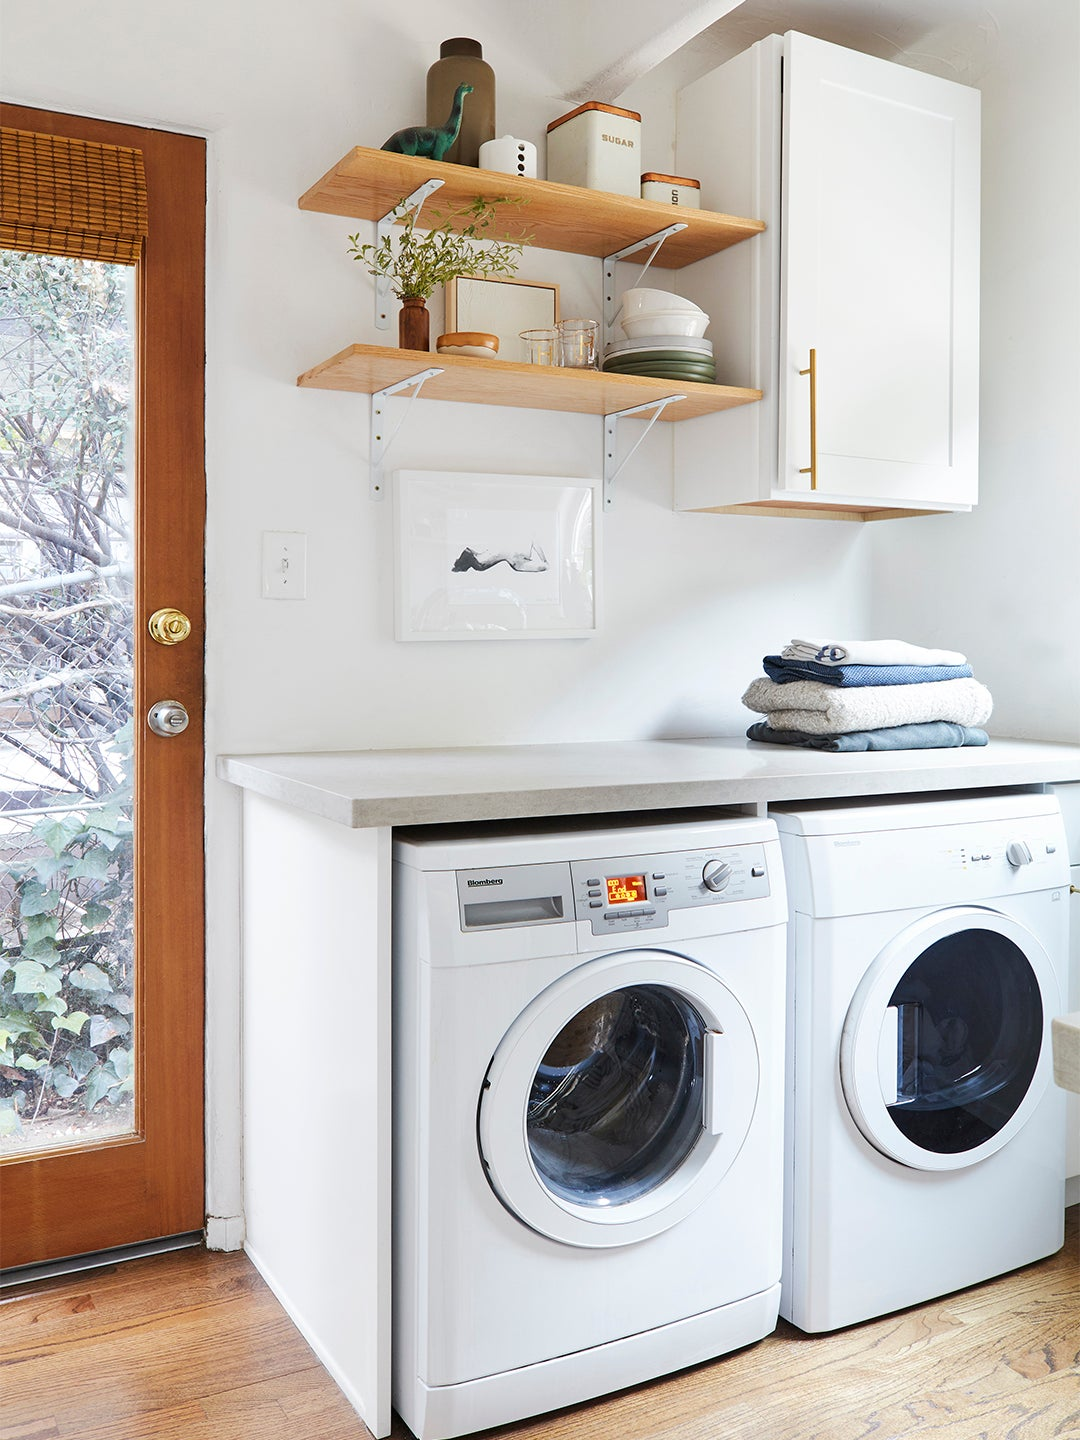 laundry machines with open wood shelves